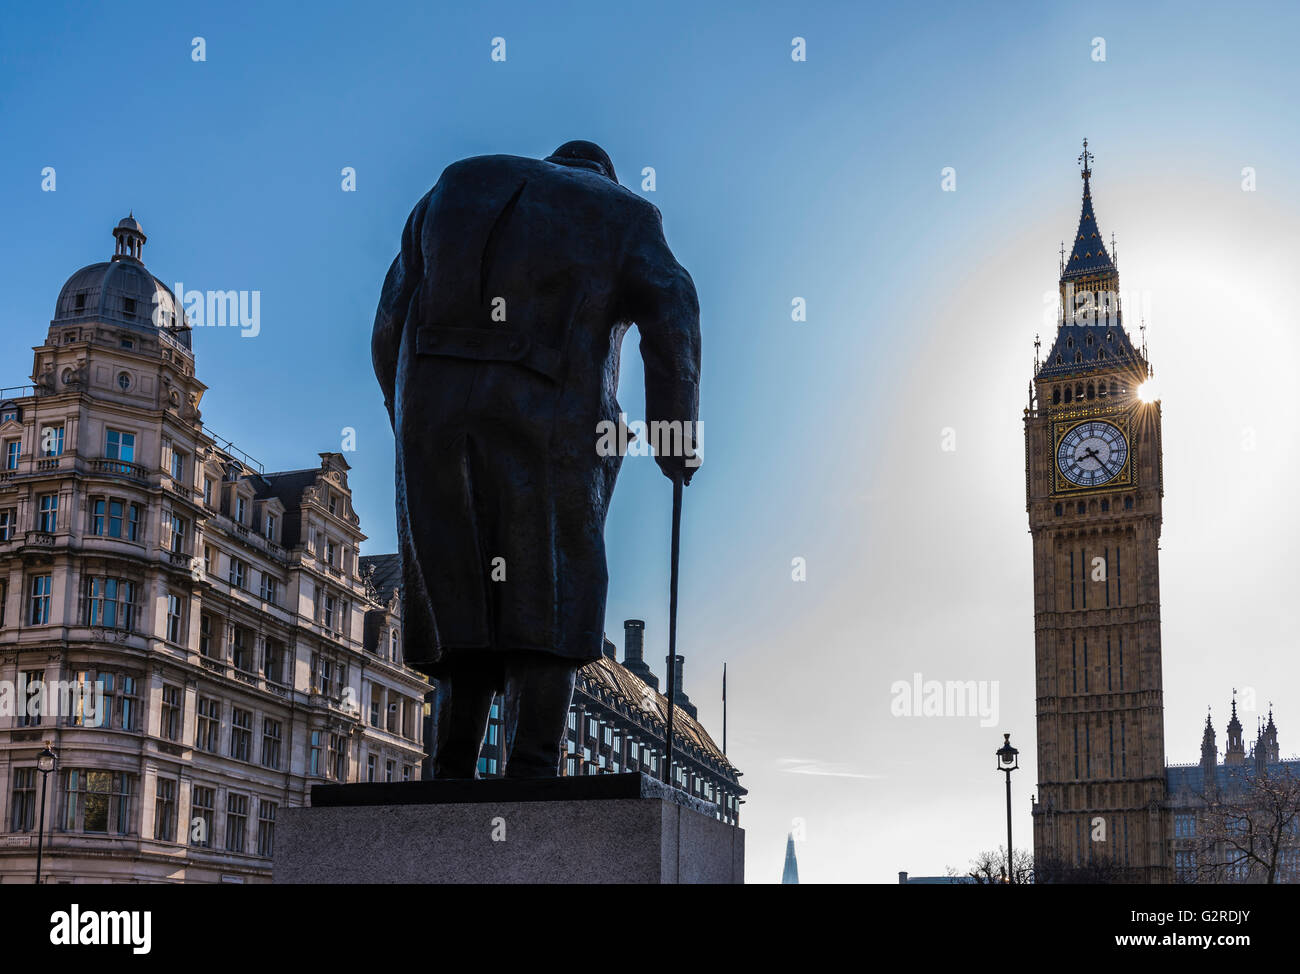 Sun shining next to Big Ben and Parliament Square, Westminster, London, UK. - Stock Image